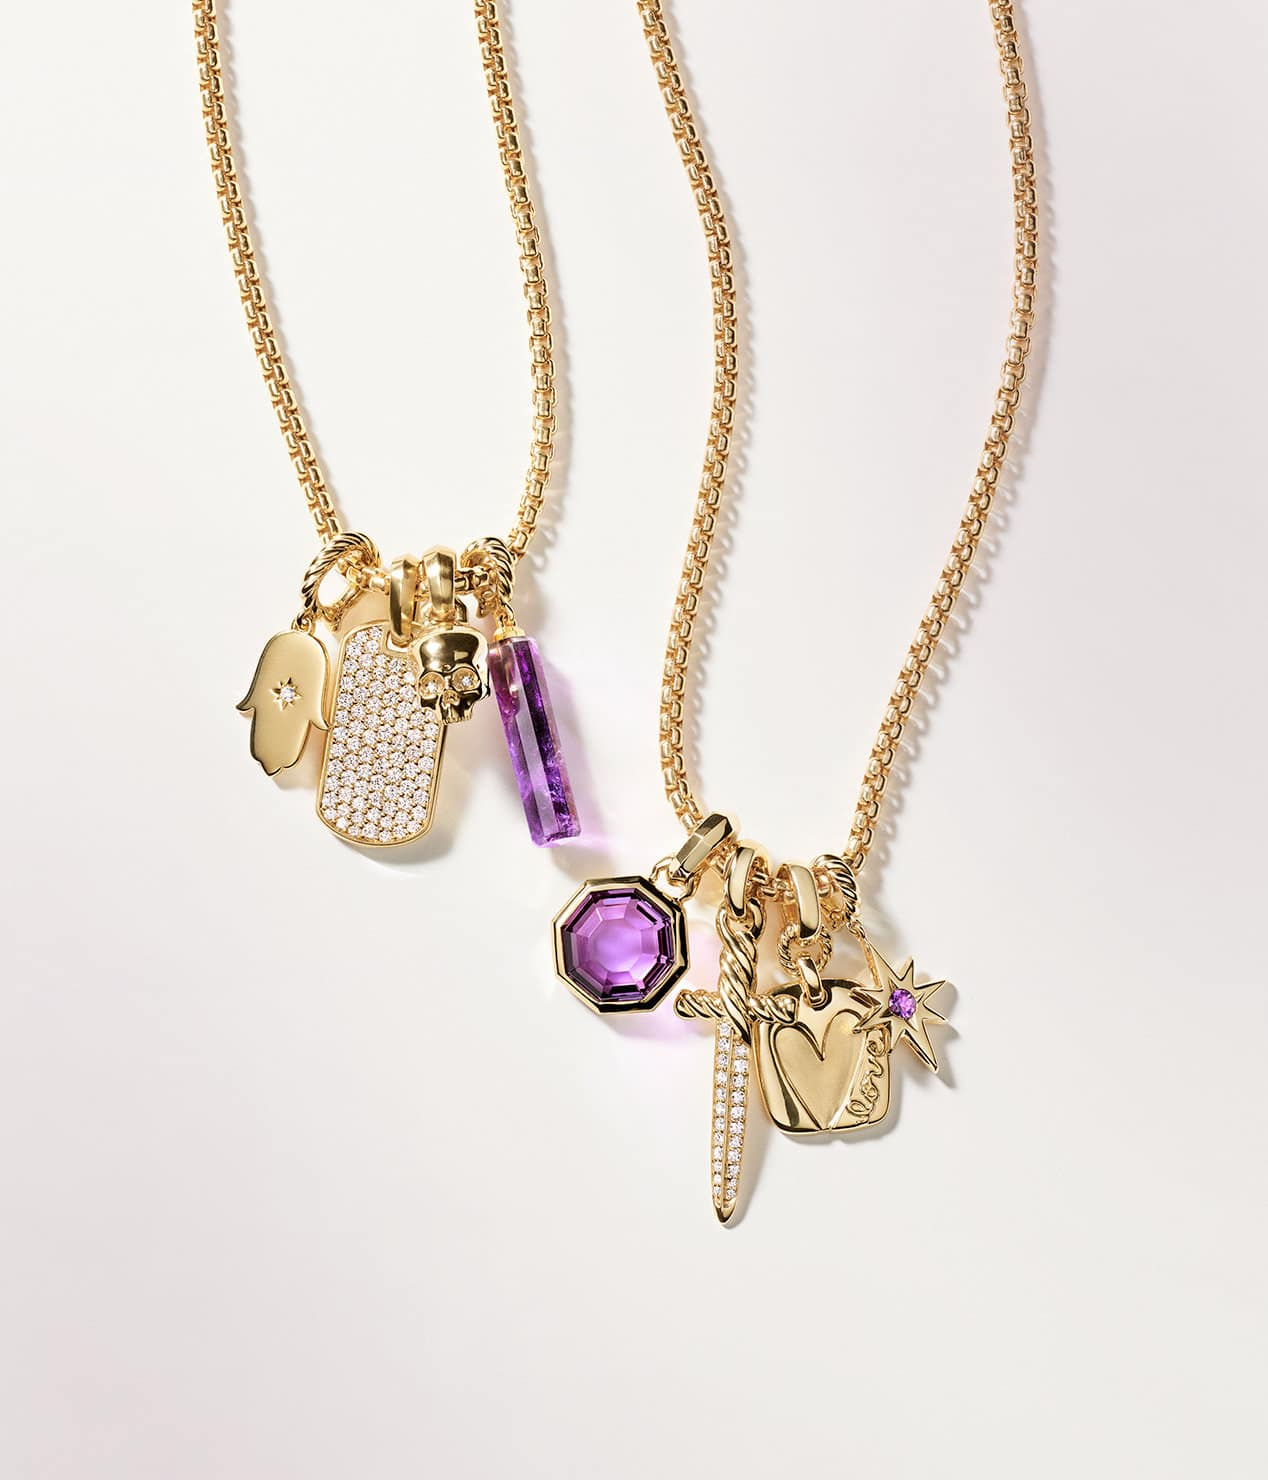 A color photograph shows two David Yurman chain necklaces strung with four amulets each draped on a white background. The women's jewelry is crafted from 18K yellow gold with or without pavé diamonds and amethyst center stones. The amulets come in various shapes such as a Hamsa hand, tag, skull, barrel, octagon, dagger and heart.